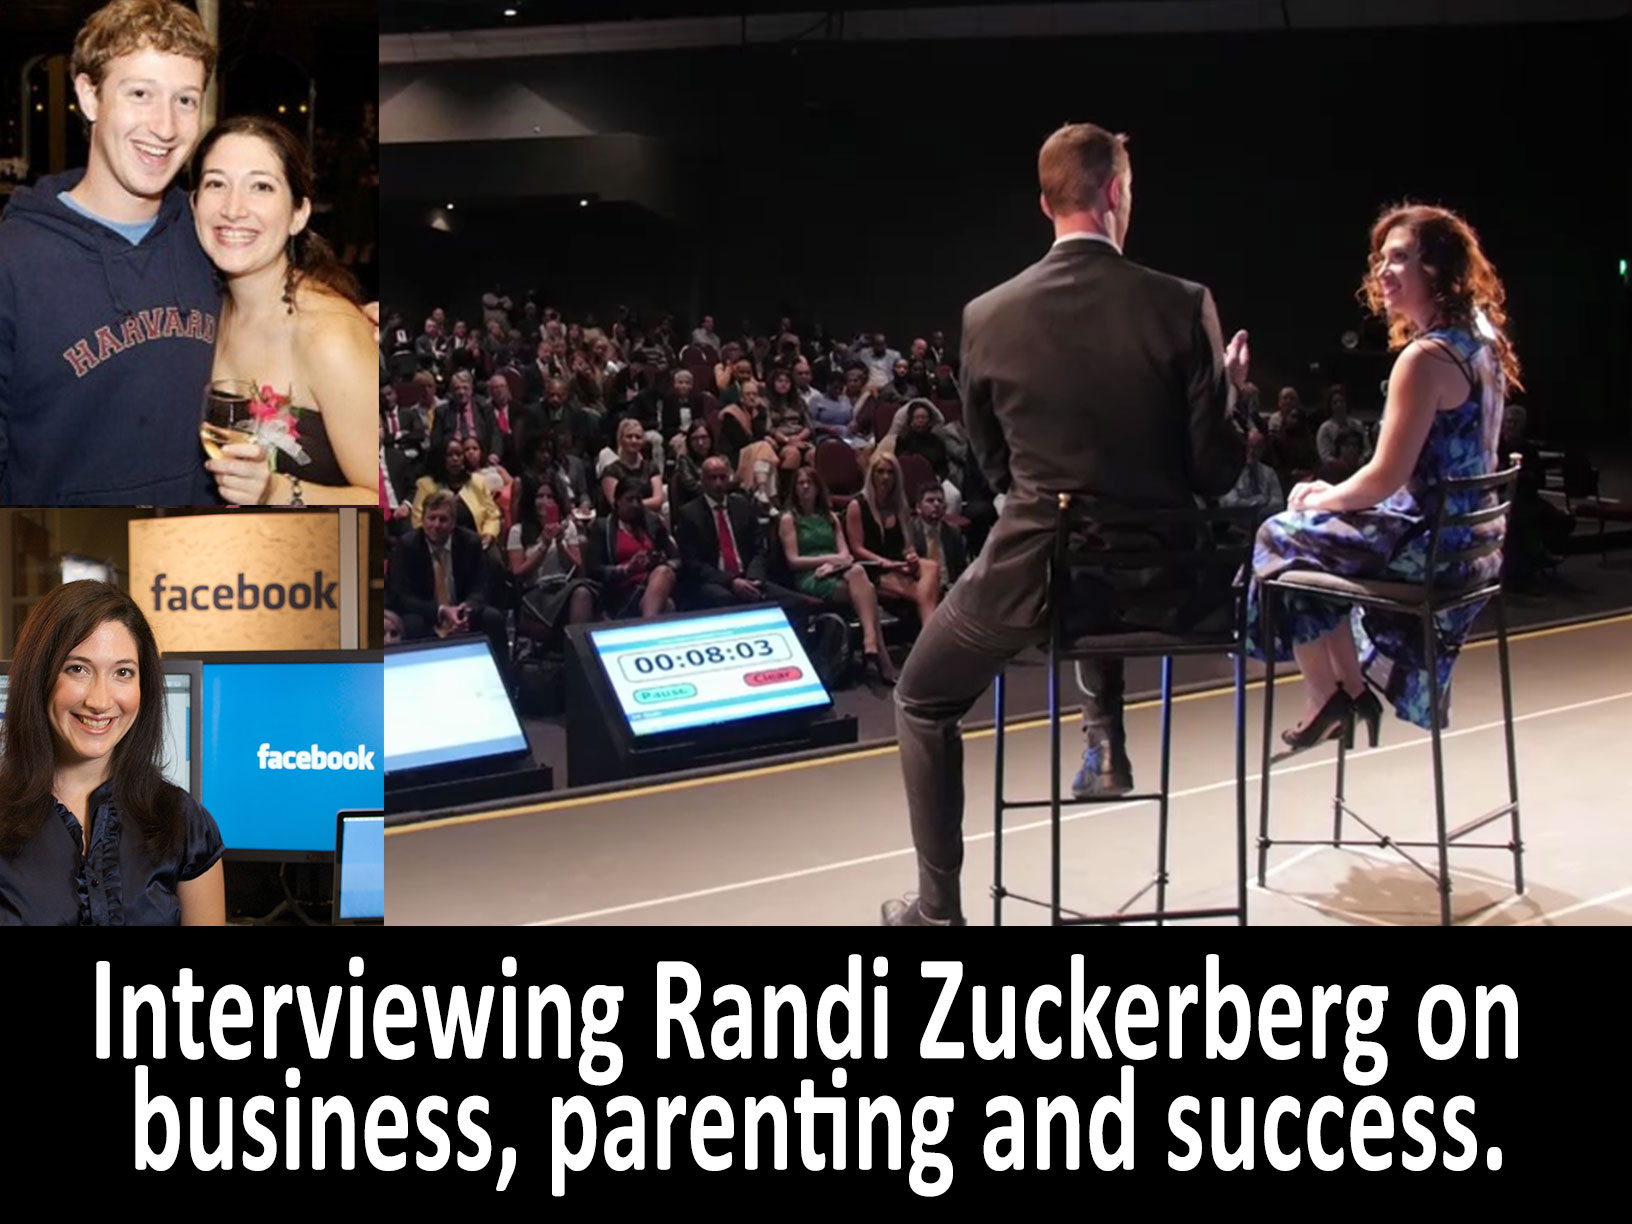 Robin Booth and Randy Zuckerberg